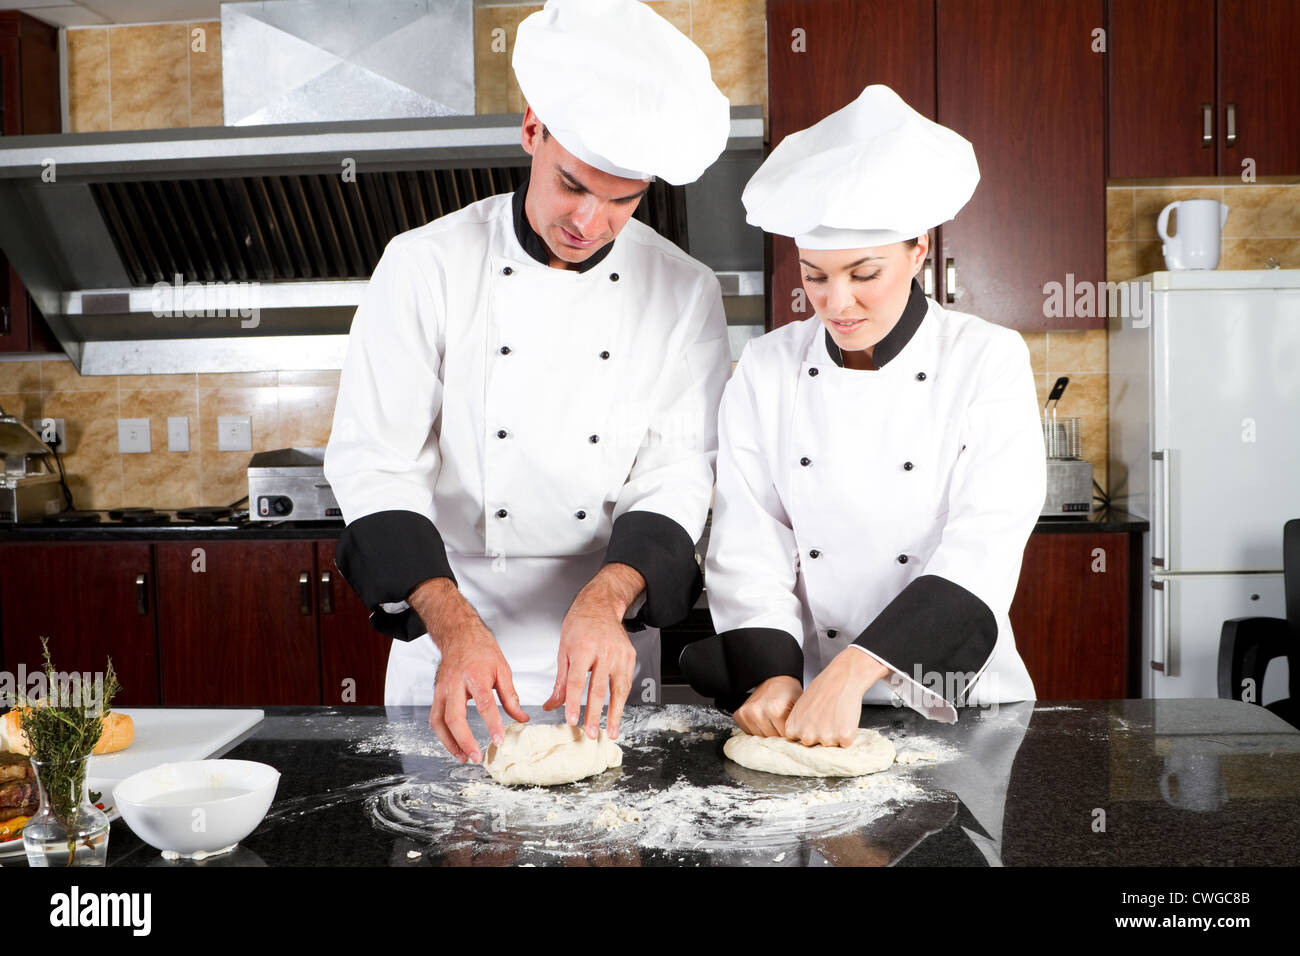 chefs making dough in kitchen - Stock Image